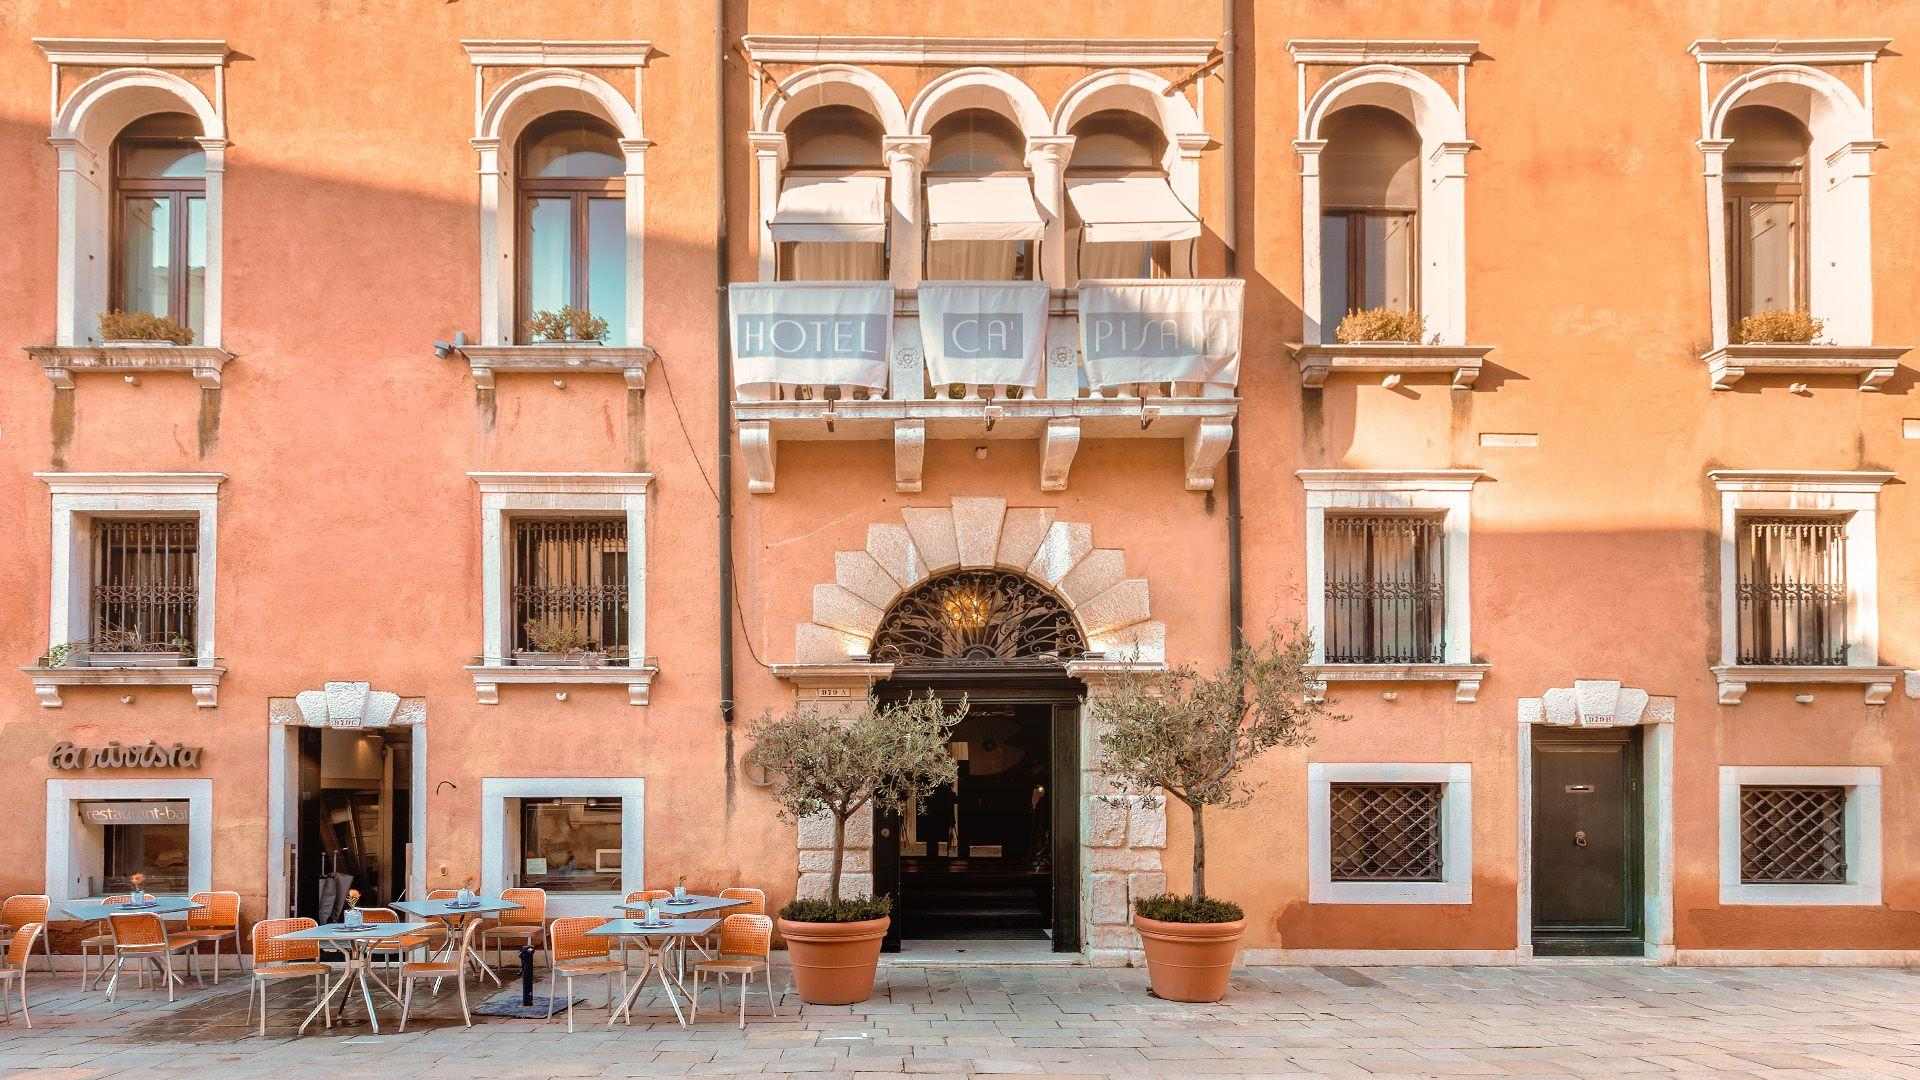 Boutique-hotel-ca-pisani-home